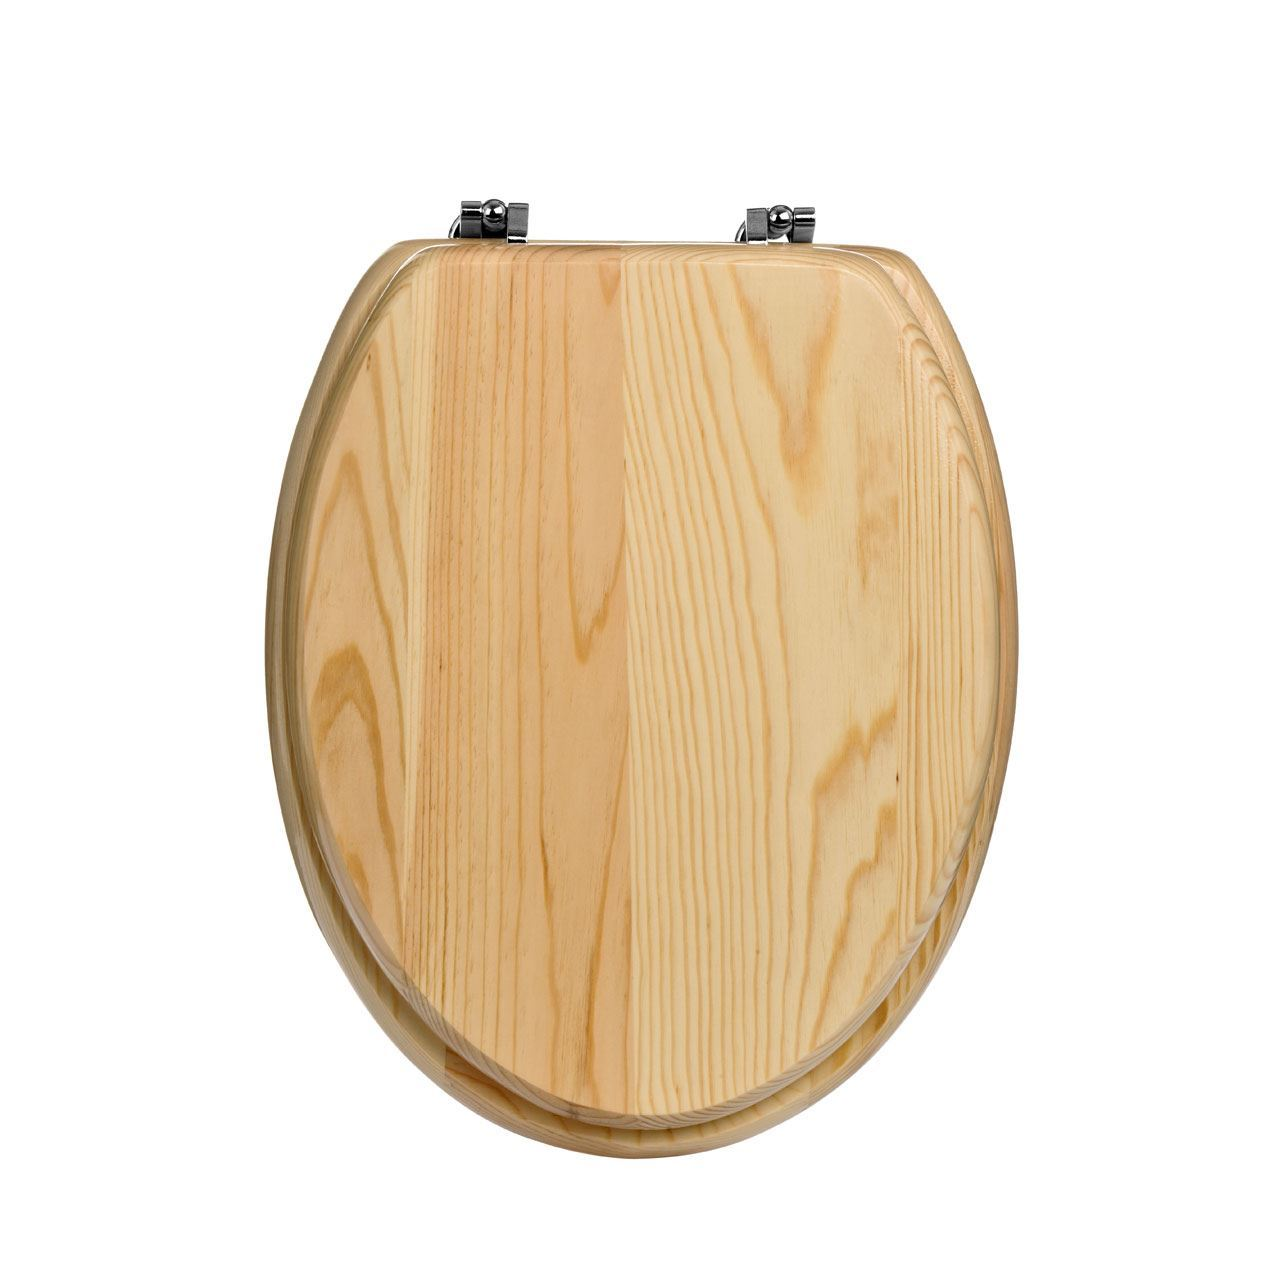 Toilet Seat Pine Wood Natural Colour 18 EBay